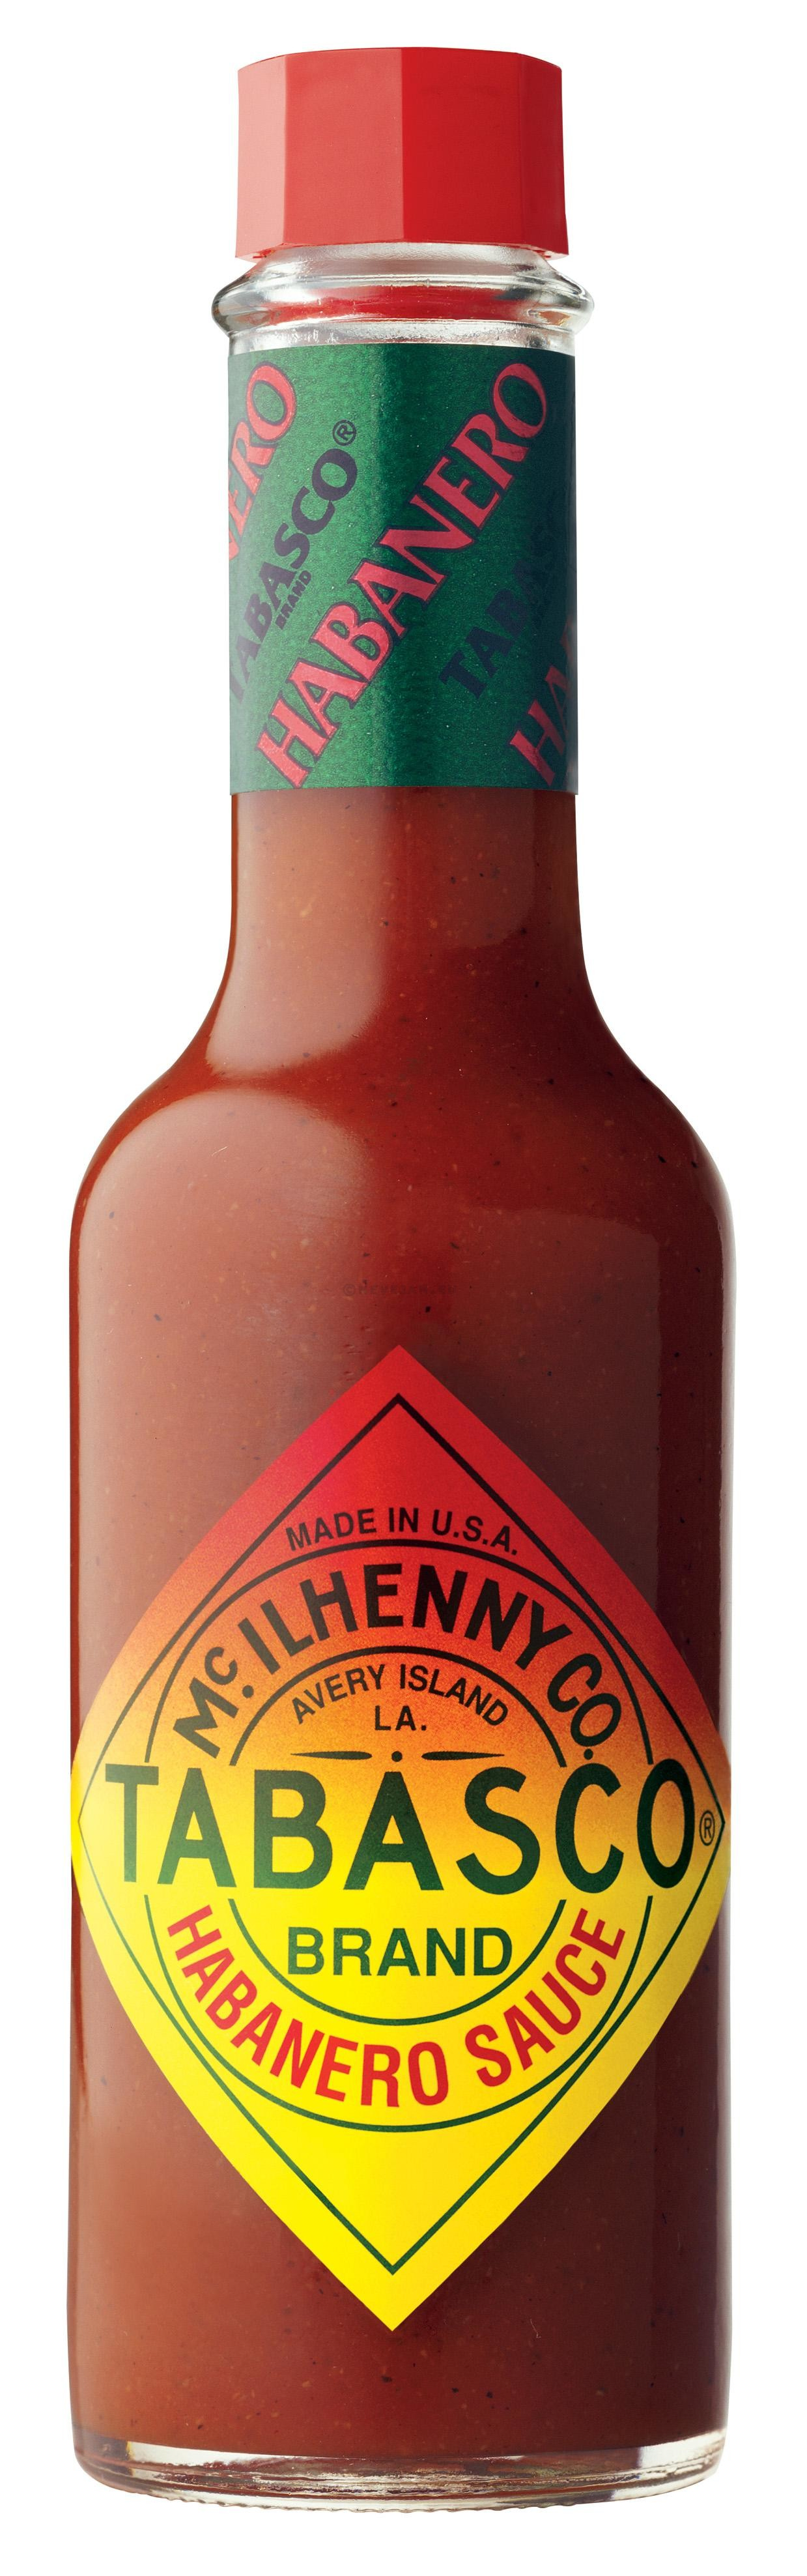 Tabasco Habanero pepper sauce 150ml Mac Ilhenny